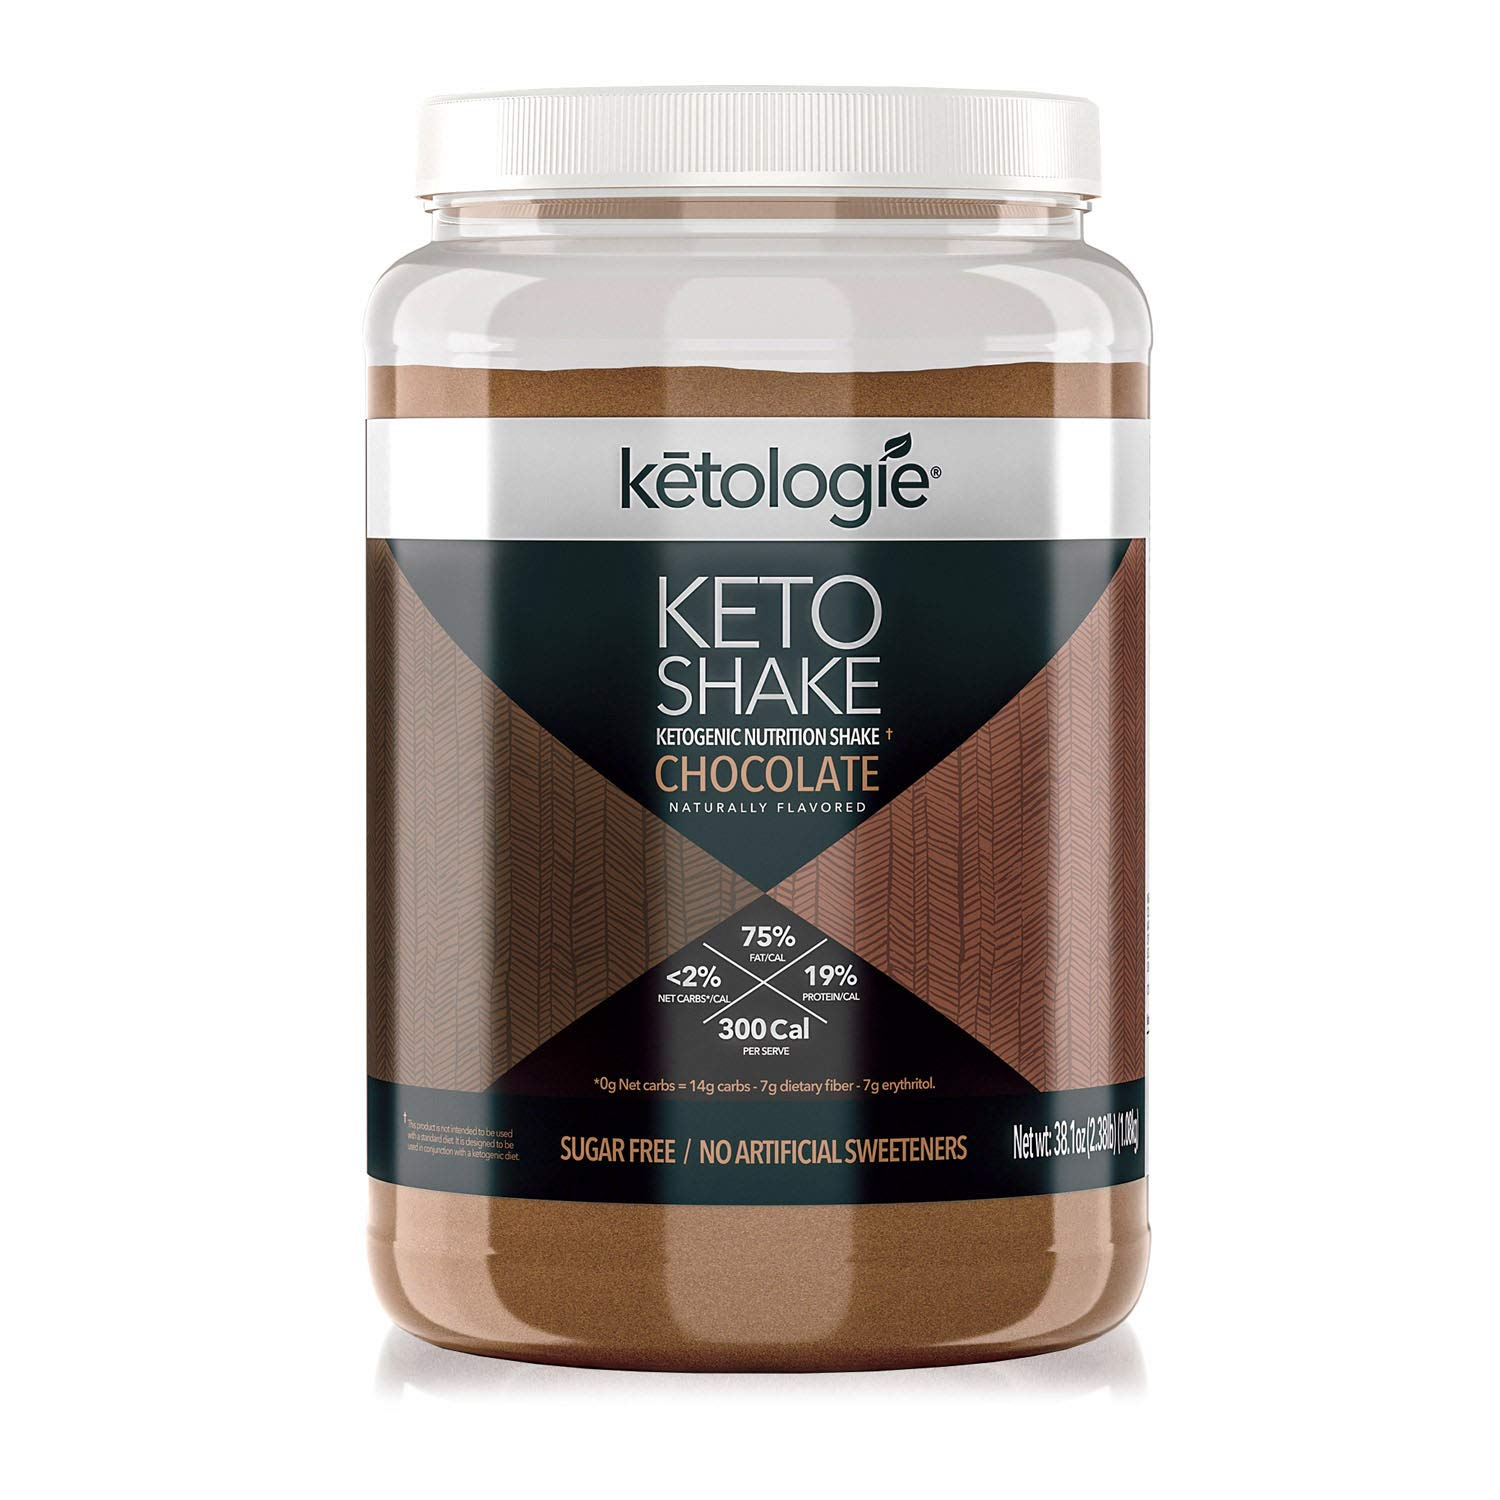 Ketologie Collagen Keto Shake (Chocolate) - with Coconut Oil, Grass Fed Hydrolyzed Collagen Peptides Type I & III, Low Carb High Fat, Lactose Free, Gluten Free, Soy Free, 2.38lbs